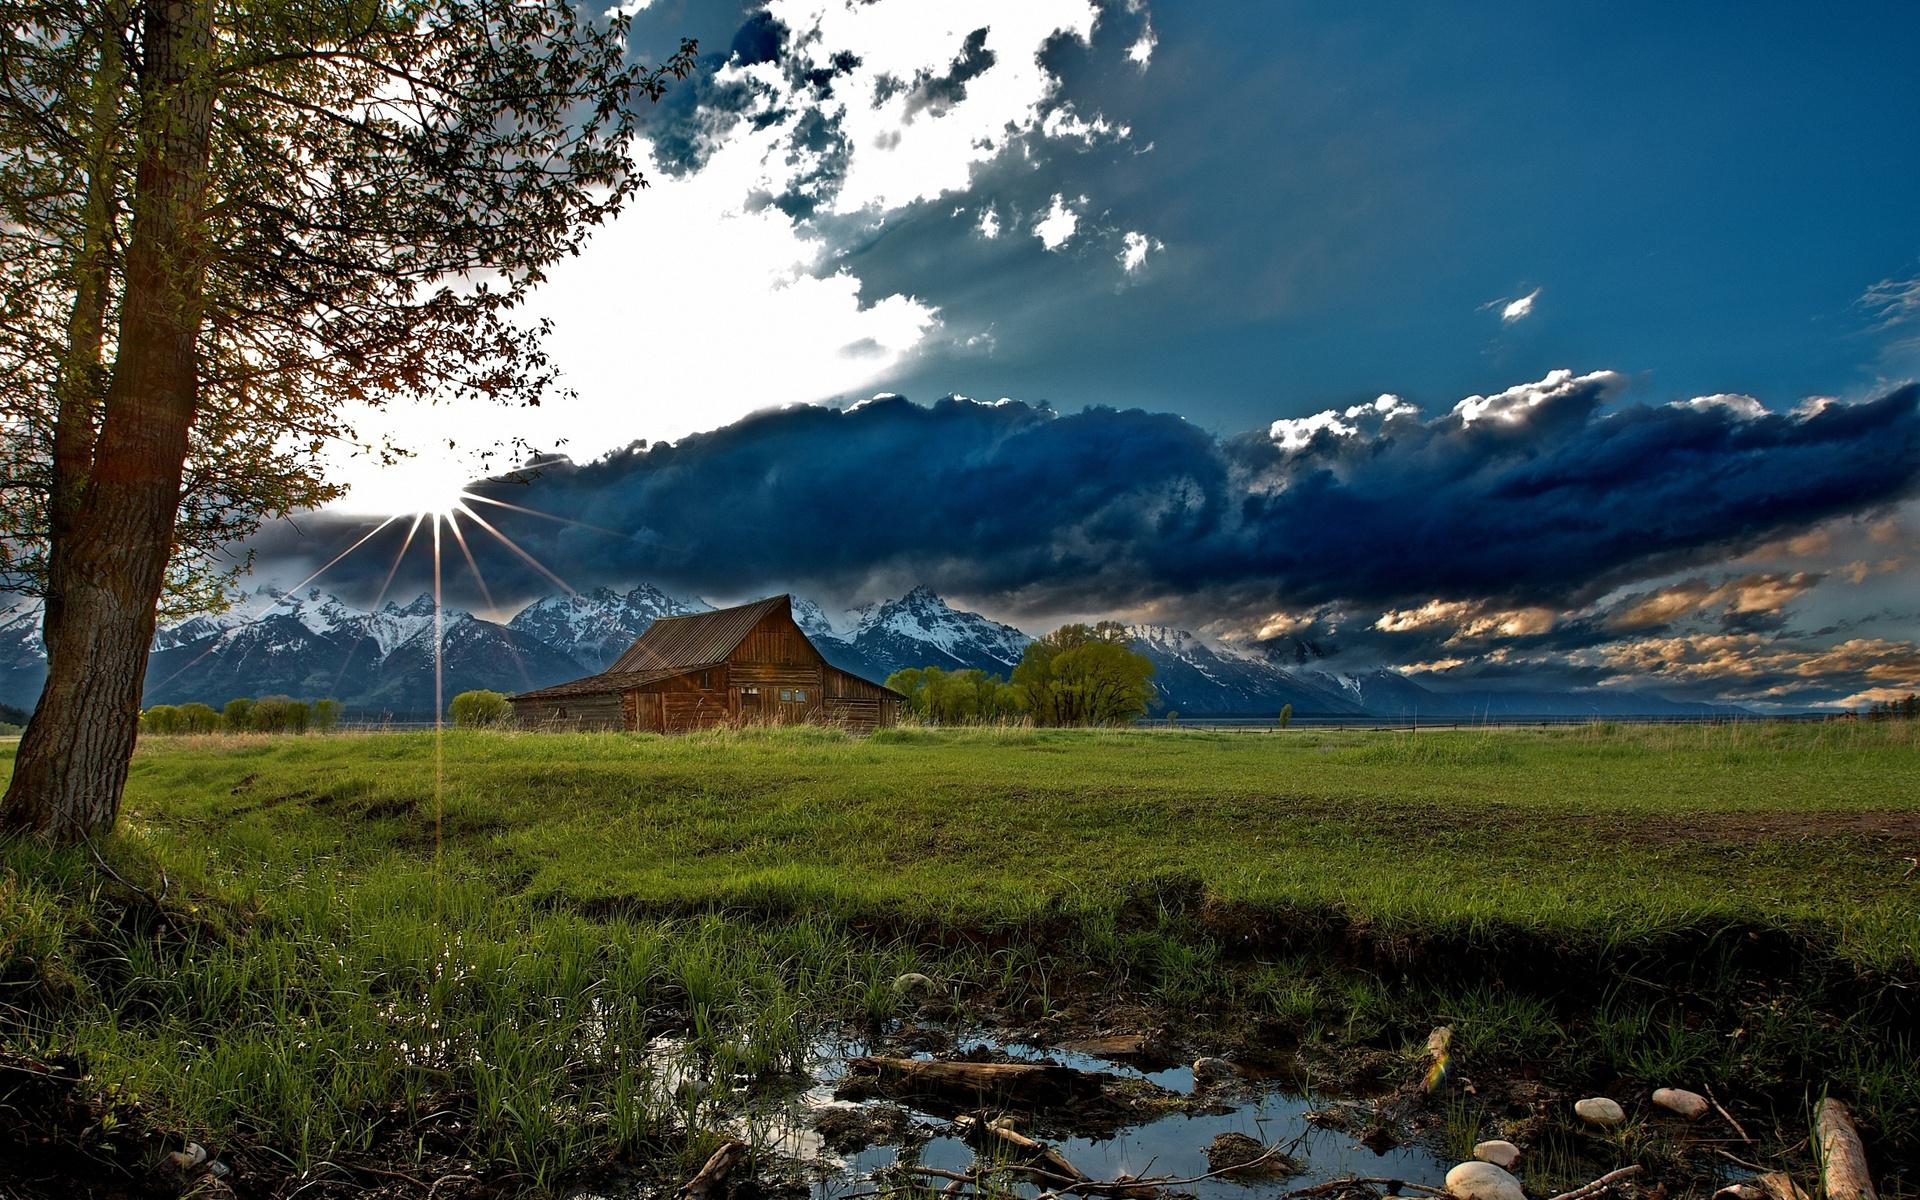 nature_landscapes_rustic_mountains_sky_clouds_sunrise_sunset_trees_barn_farm_high_quality_picture